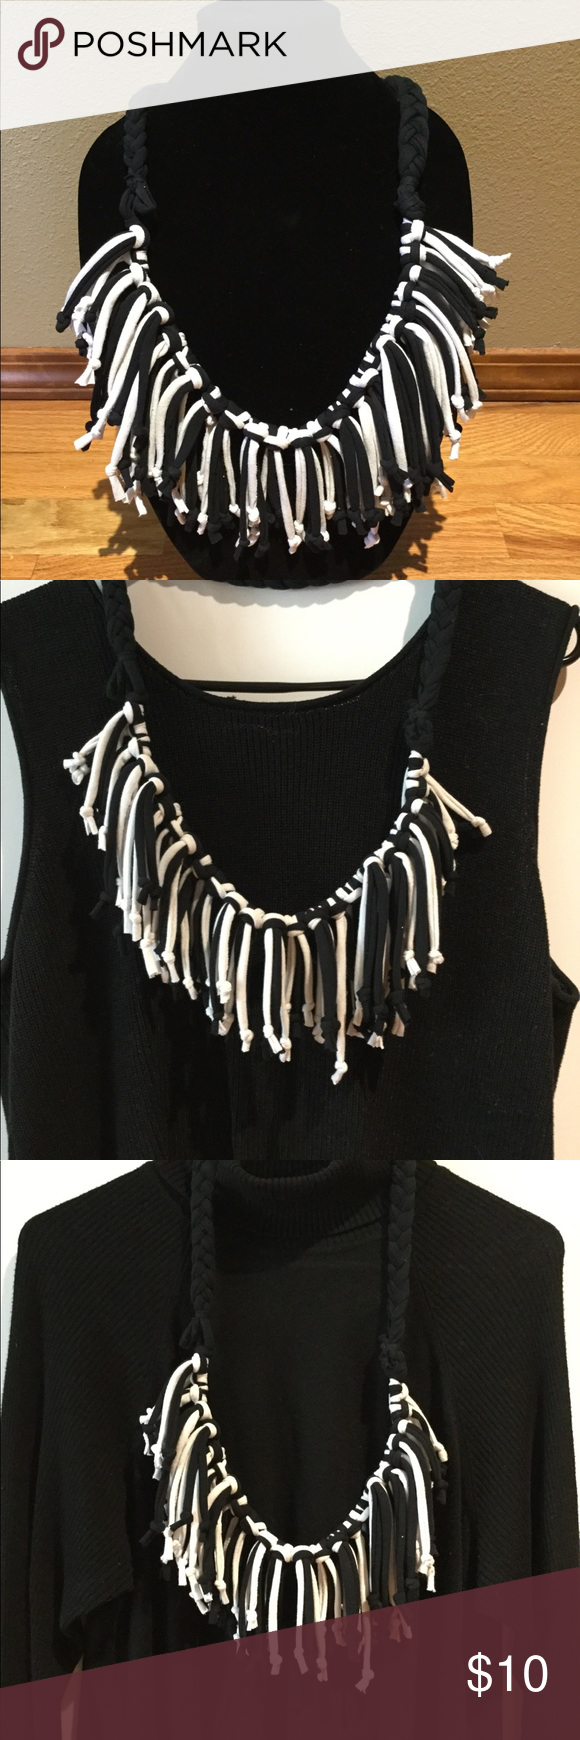 Shred Ups Cycled Fun Neckwear Shreds are fun unique neckwear that can be worn with a fun summer top or business attire. Shreds are made from up cycled material. Jewelry #businessattiresummer